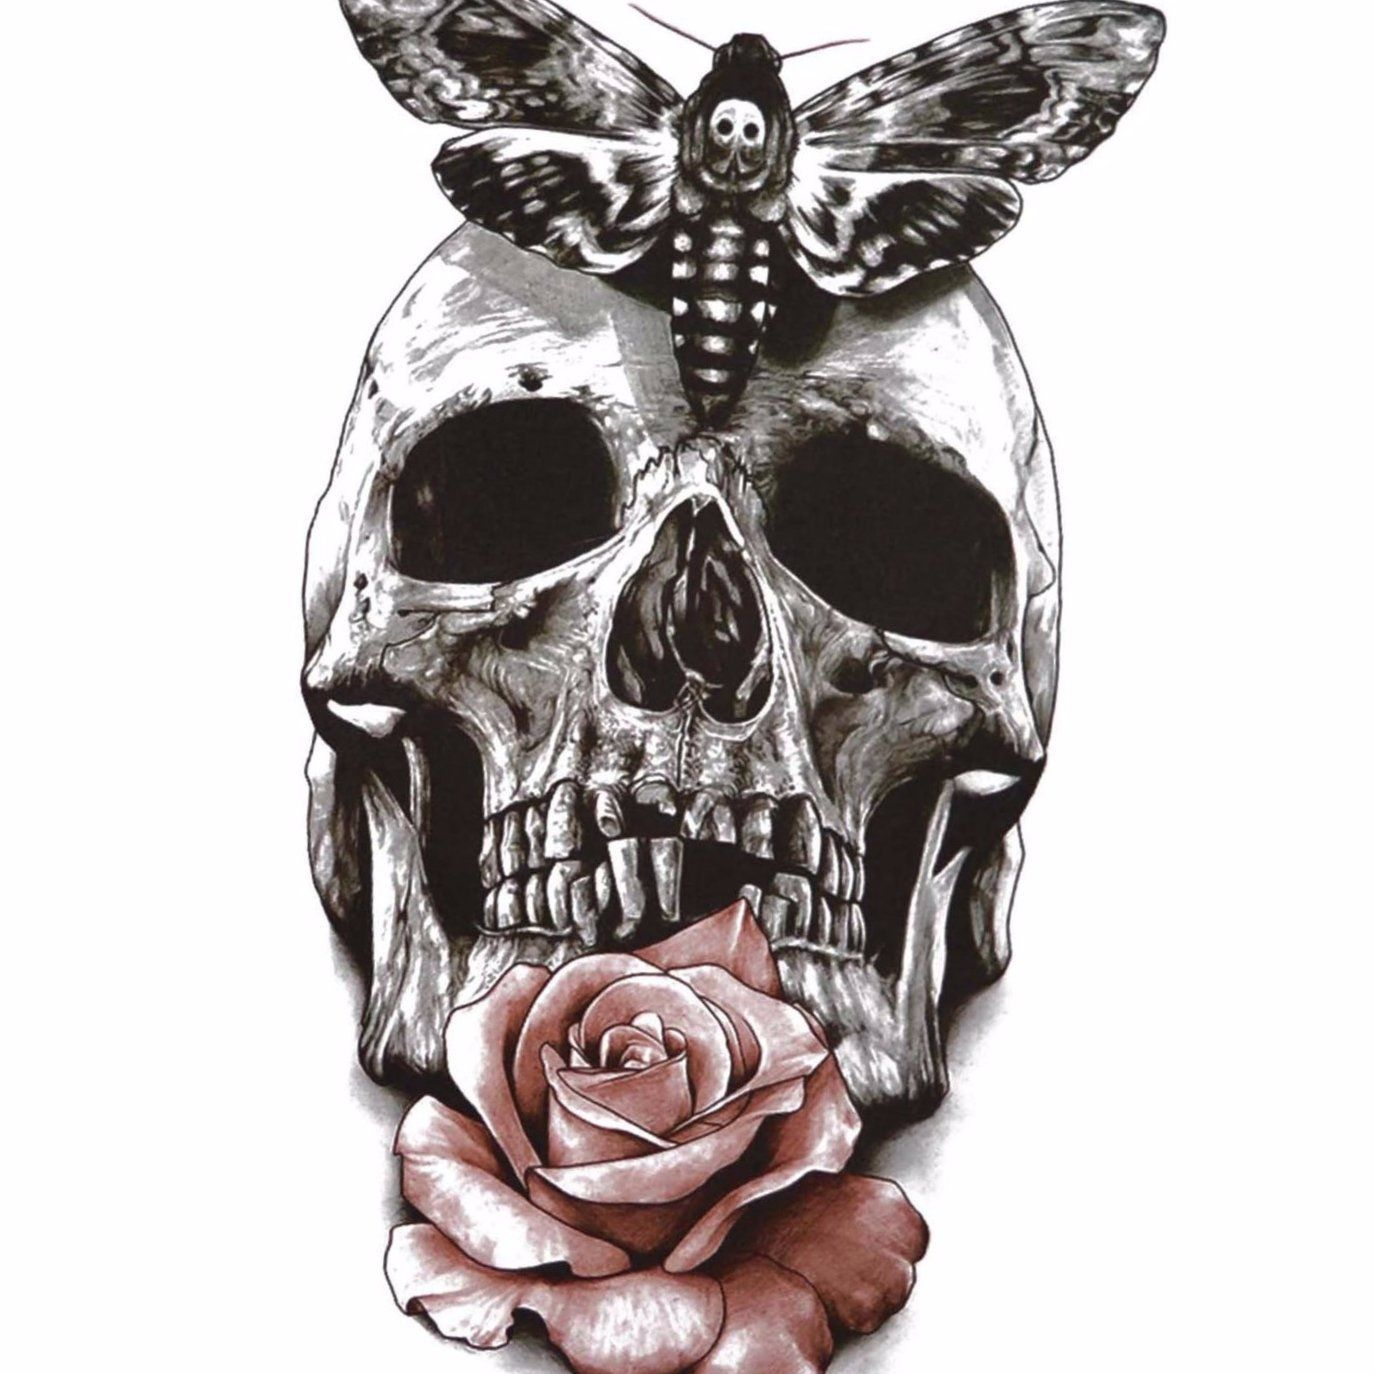 dfb88ab0dd76d Large Skull Rose Temporary Tattoo | Products | Tattoos, Skull ...